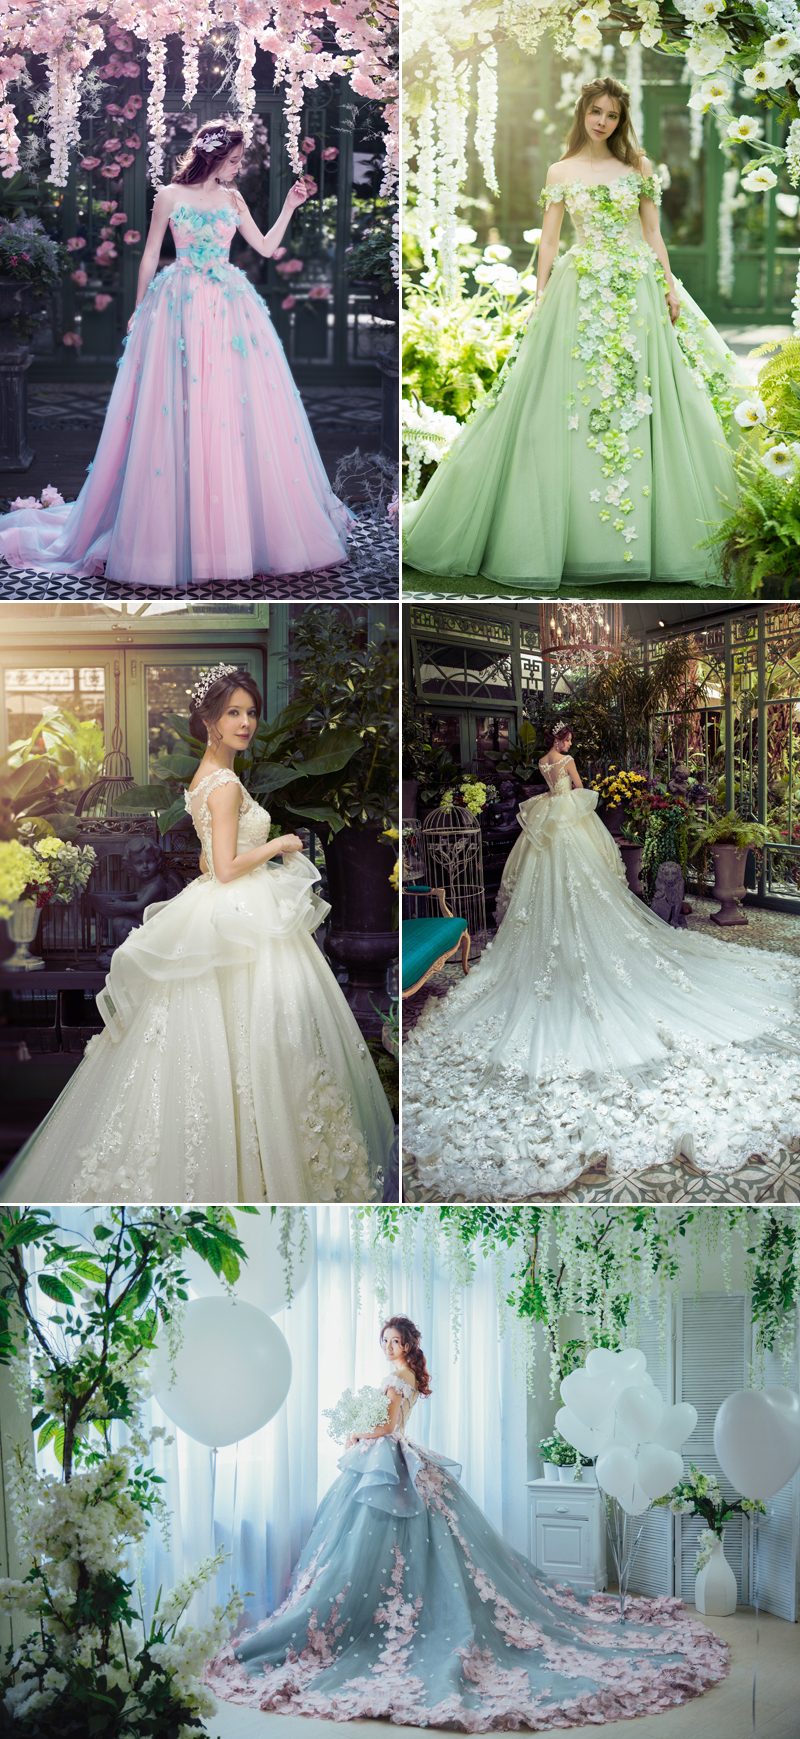 colorful wedding dresses with a gorgeous model